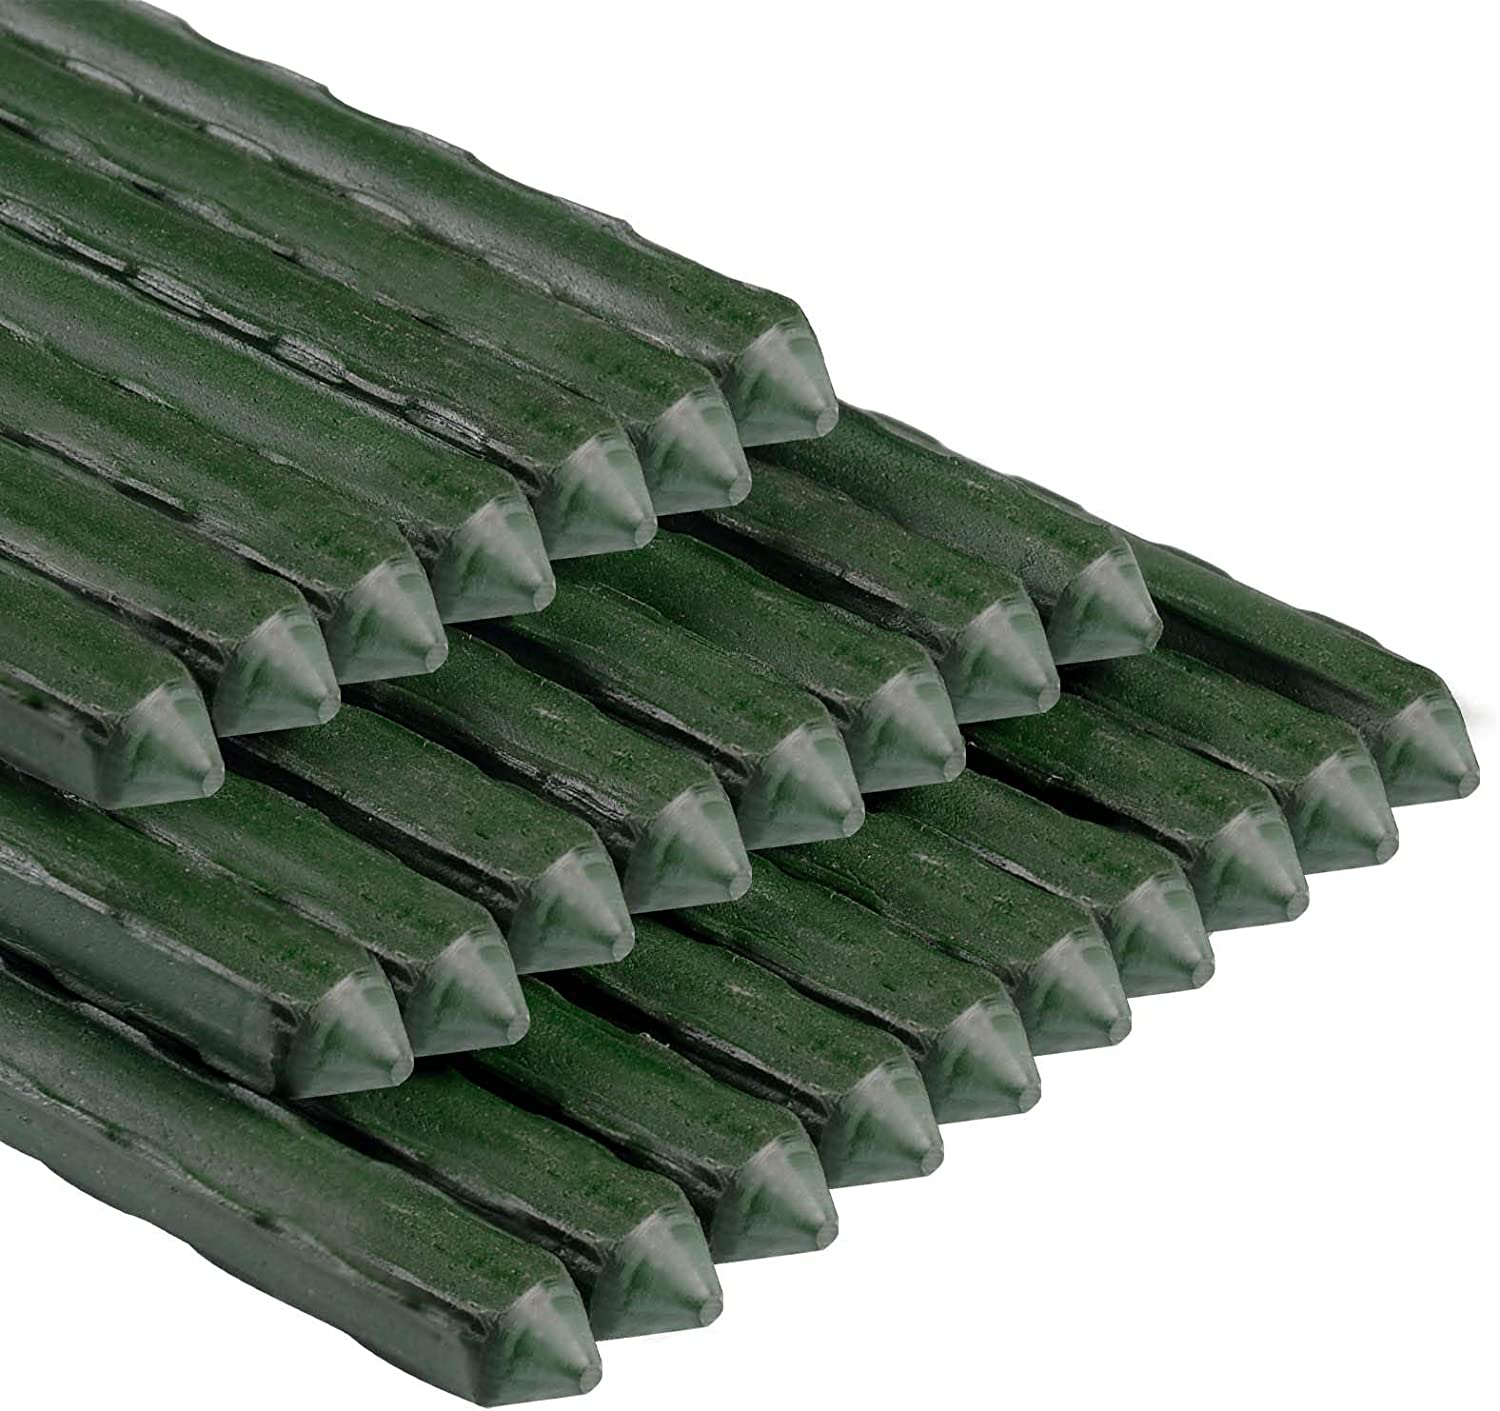 N/P Garden Stakes 60 Inches Plastic Coated Steel Plant Stakes for Tomato, Cucumber, Bean, Pack of 25